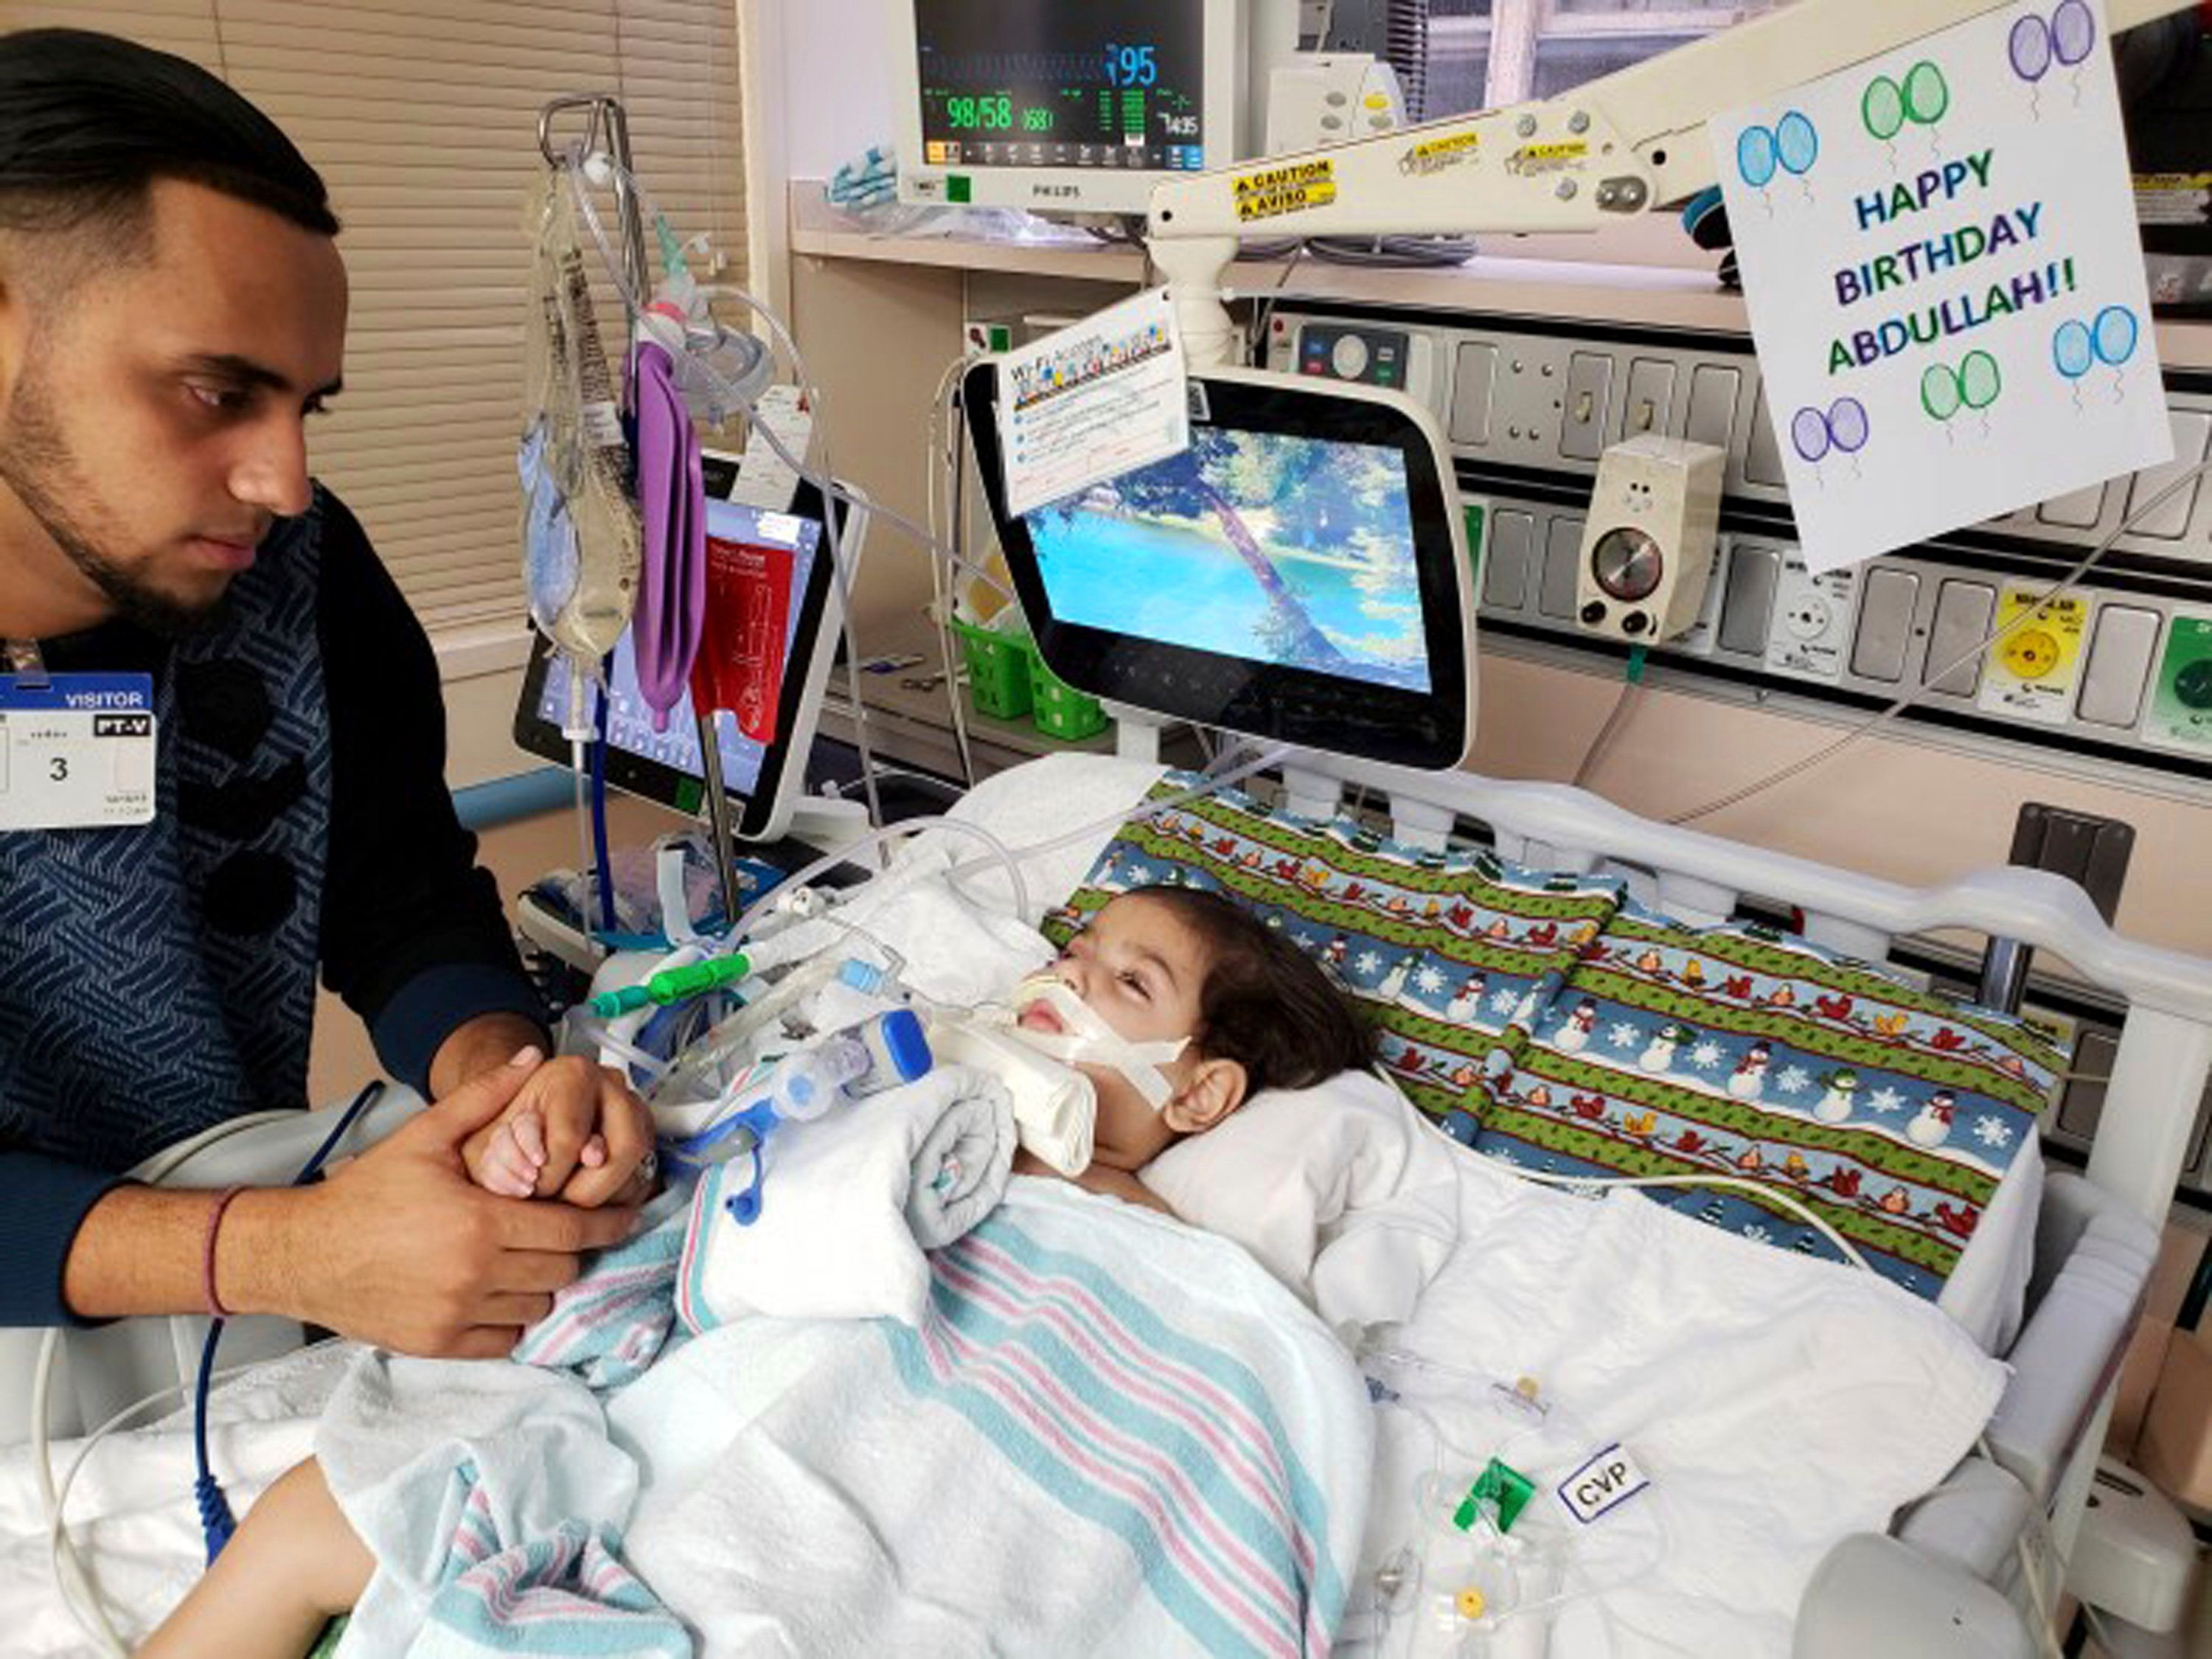 This recent but undated photo, released Monday, Dec. 17, 2018 by the Council on American-Islamic Relations in Sacramento, Calif., shows Ali Hassan with his dying 2-year-old son Abdullah in a Sacramento hospital. The boy's Yemeni mother, blocked by the Trump administration's travel ban, has won her fight for a waiver that would allow her to travel to California to see her son. Basim Elkarra of the Council on American-Islamic Relations in Sacramento said Shaima Swileh was granted a visa Tuesday and will be flying to San Francisco on Wednesday, Dec.19. (Council on American-Islamic Relations via AP)